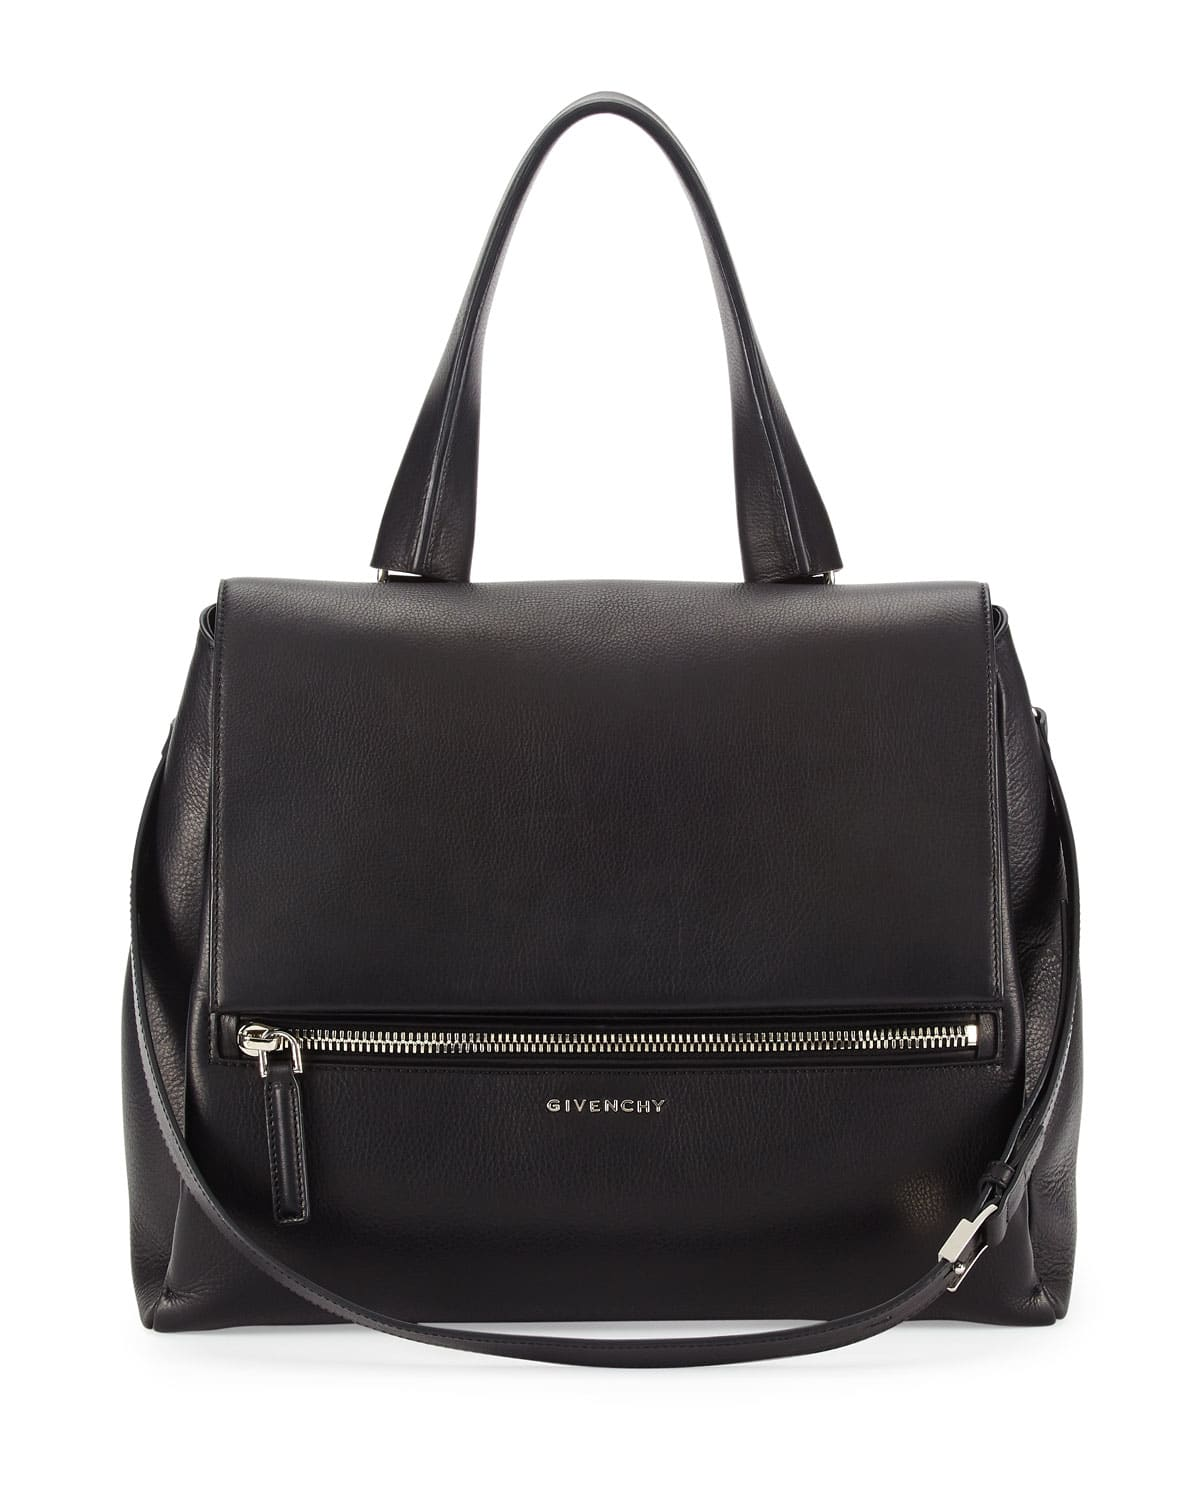 Givenchy Pandora Pure Satchel Bag Reference Guide ...